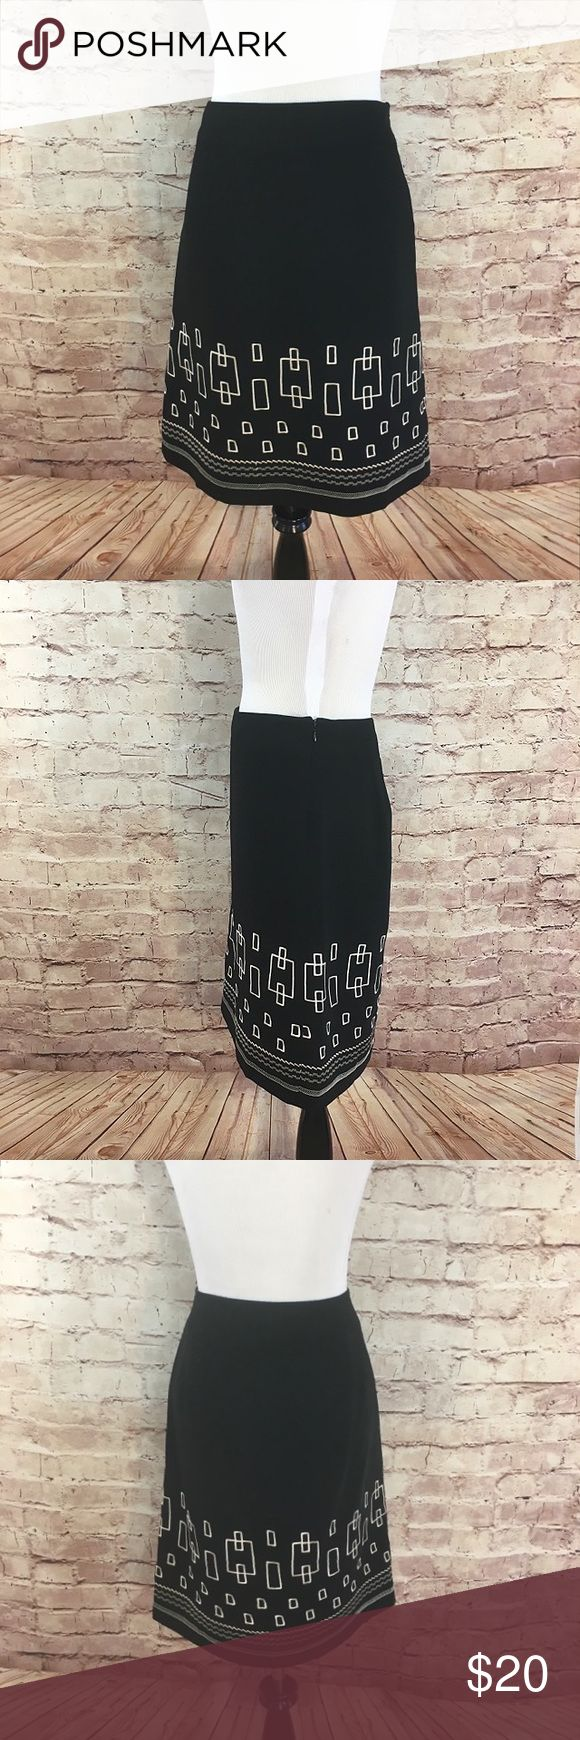 """Loft Pencil Petite Skirt Cute black pencil skirt with white stitching pattern from the Loft. The skirt is fully lined with a  side hidden zipper.  Polyester with Acetate lining. Size 6 Petite. Waist 30"""". Length 22"""". Like new condition.  No flaws or signs of wear. LOFT Skirts Pencil"""